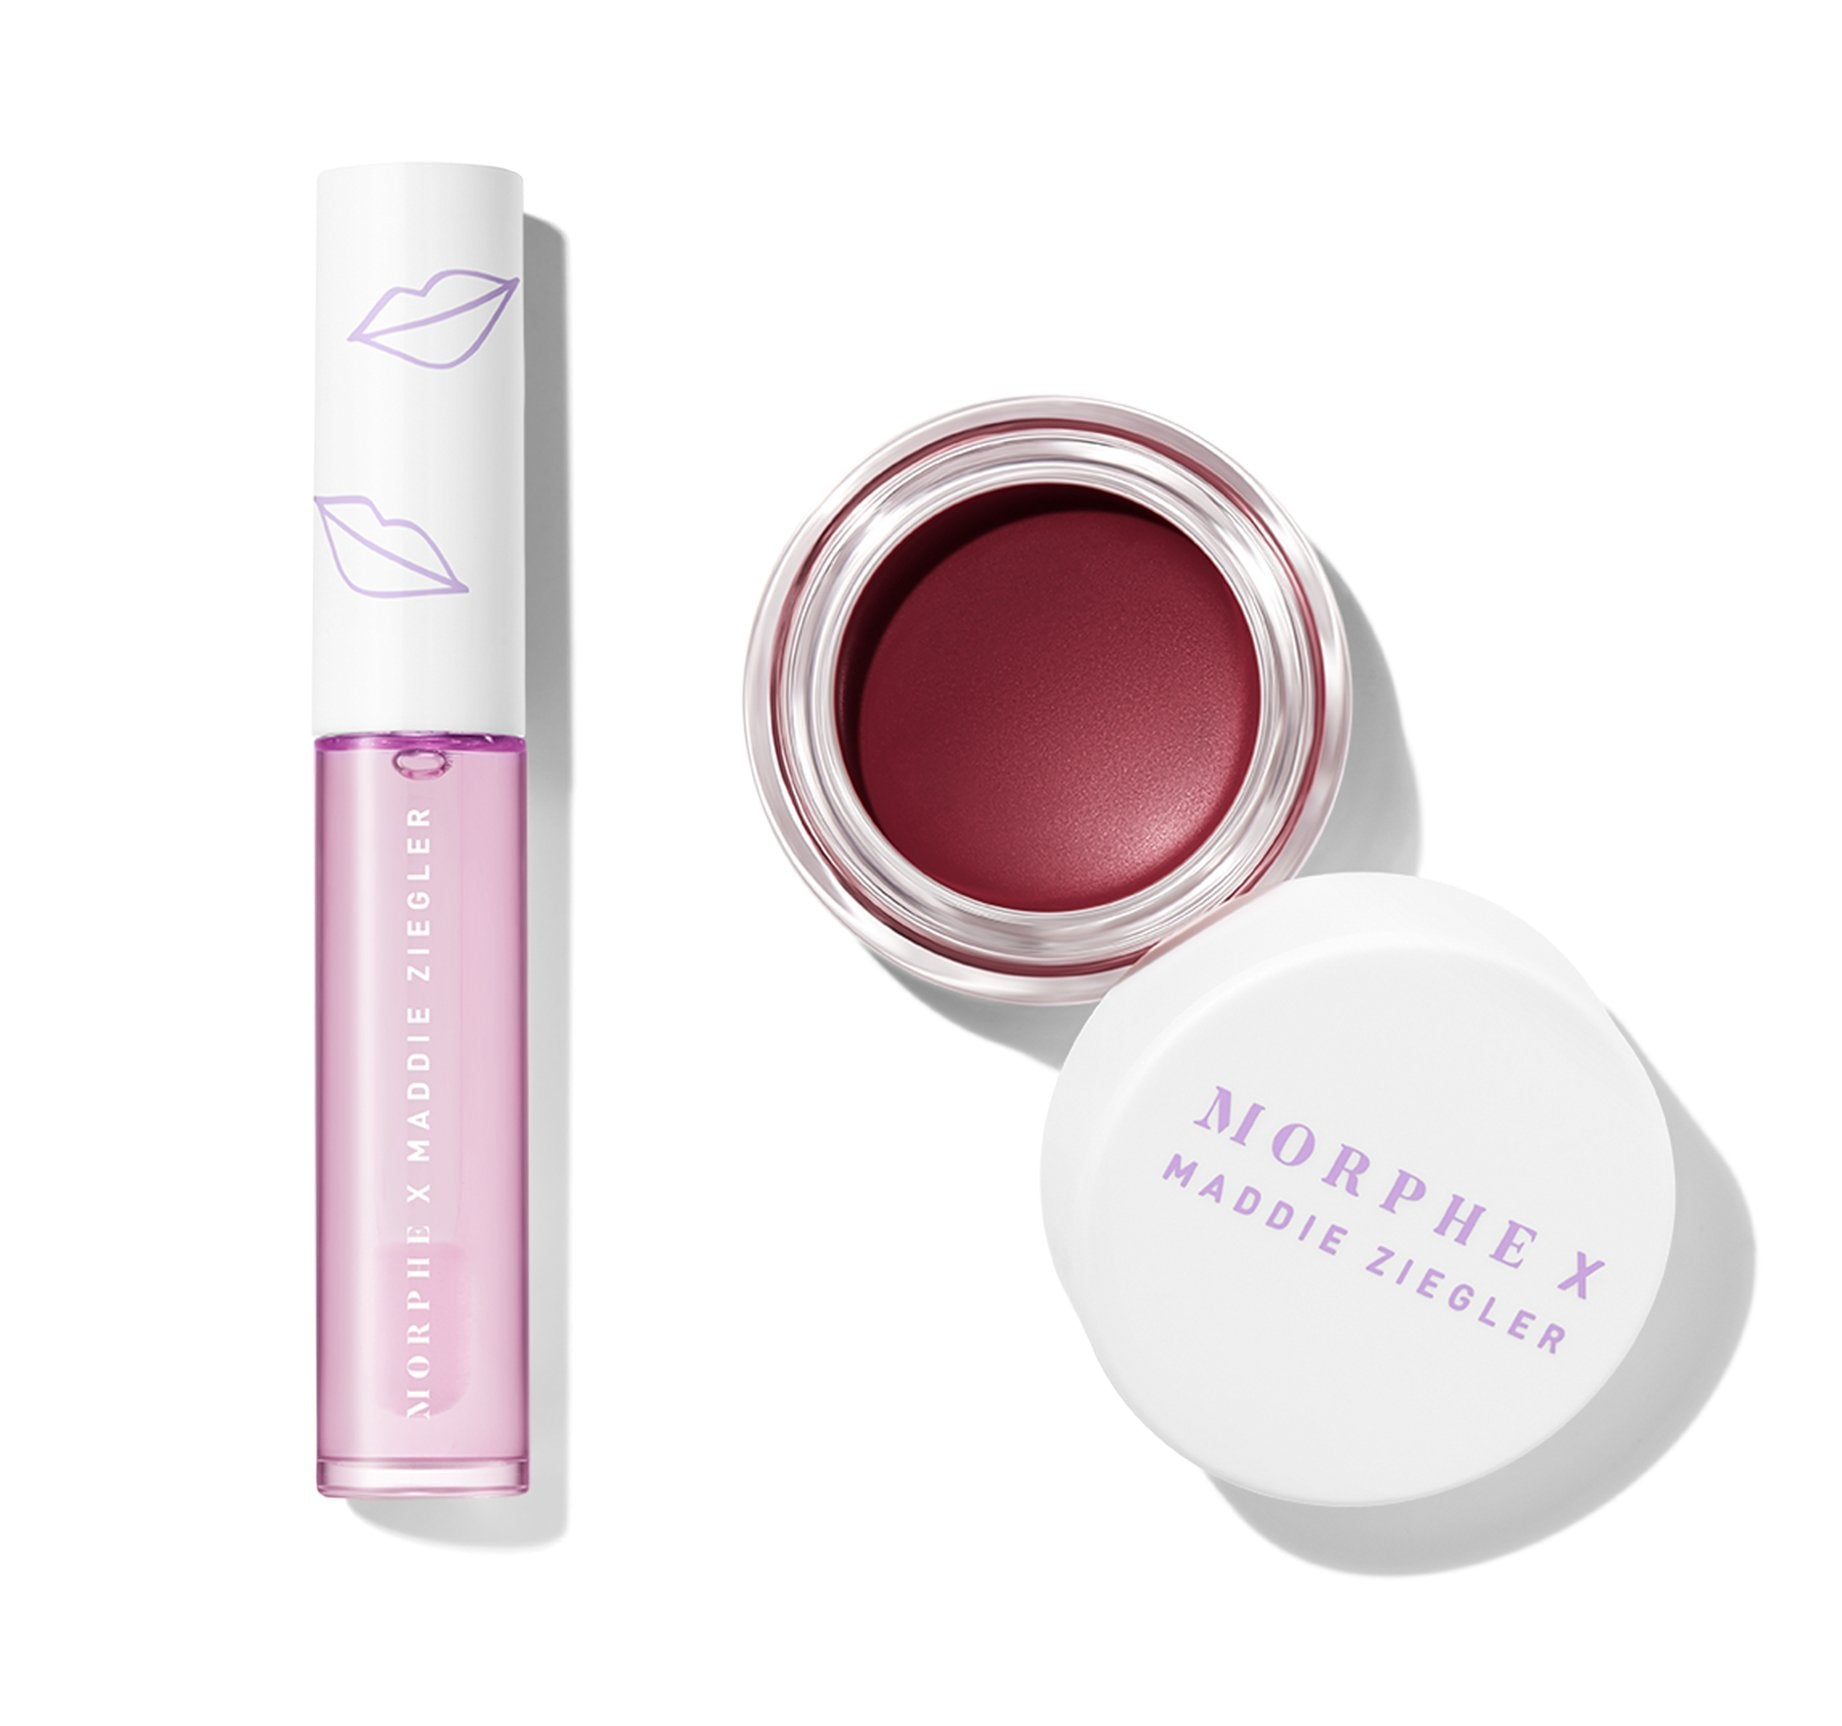 MORPHE X MADDIE ZIEGLER OH SO BERRY LIP & CHEEK DUO , view larger image